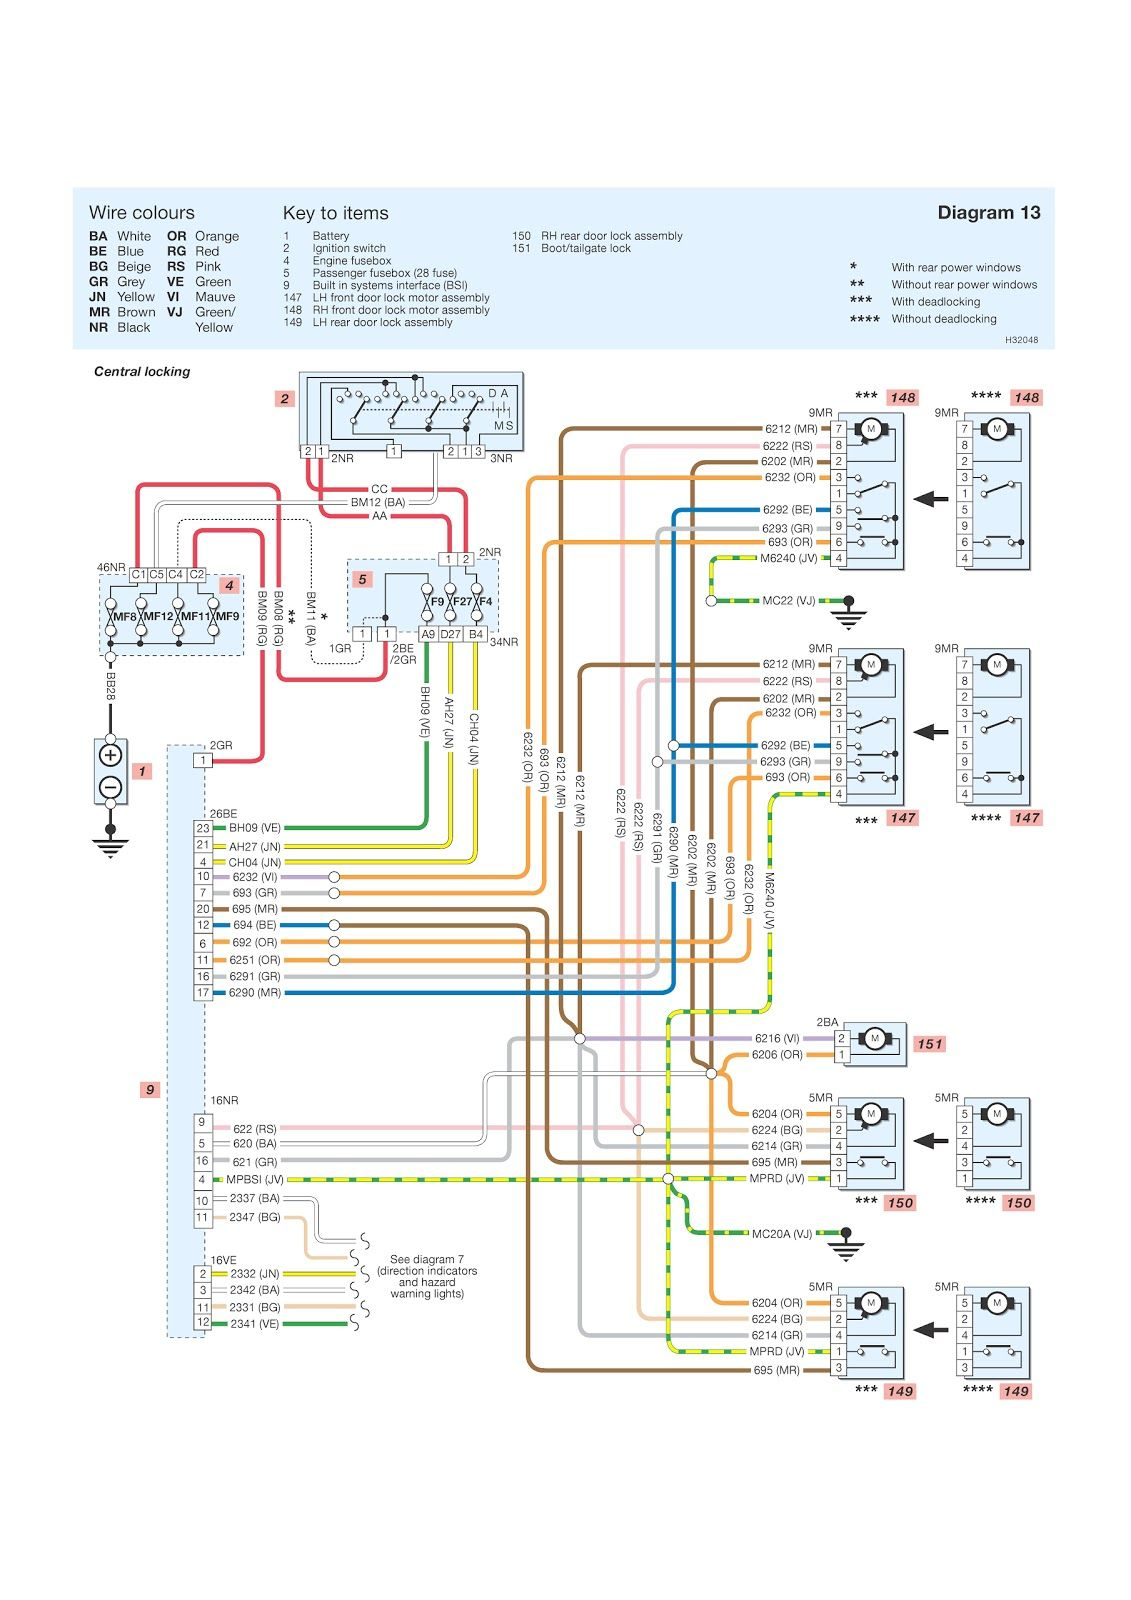 peugeot expert wiring faults wiring diagram for you peugeot expert central locking wiring diagram [ 1131 x 1600 Pixel ]